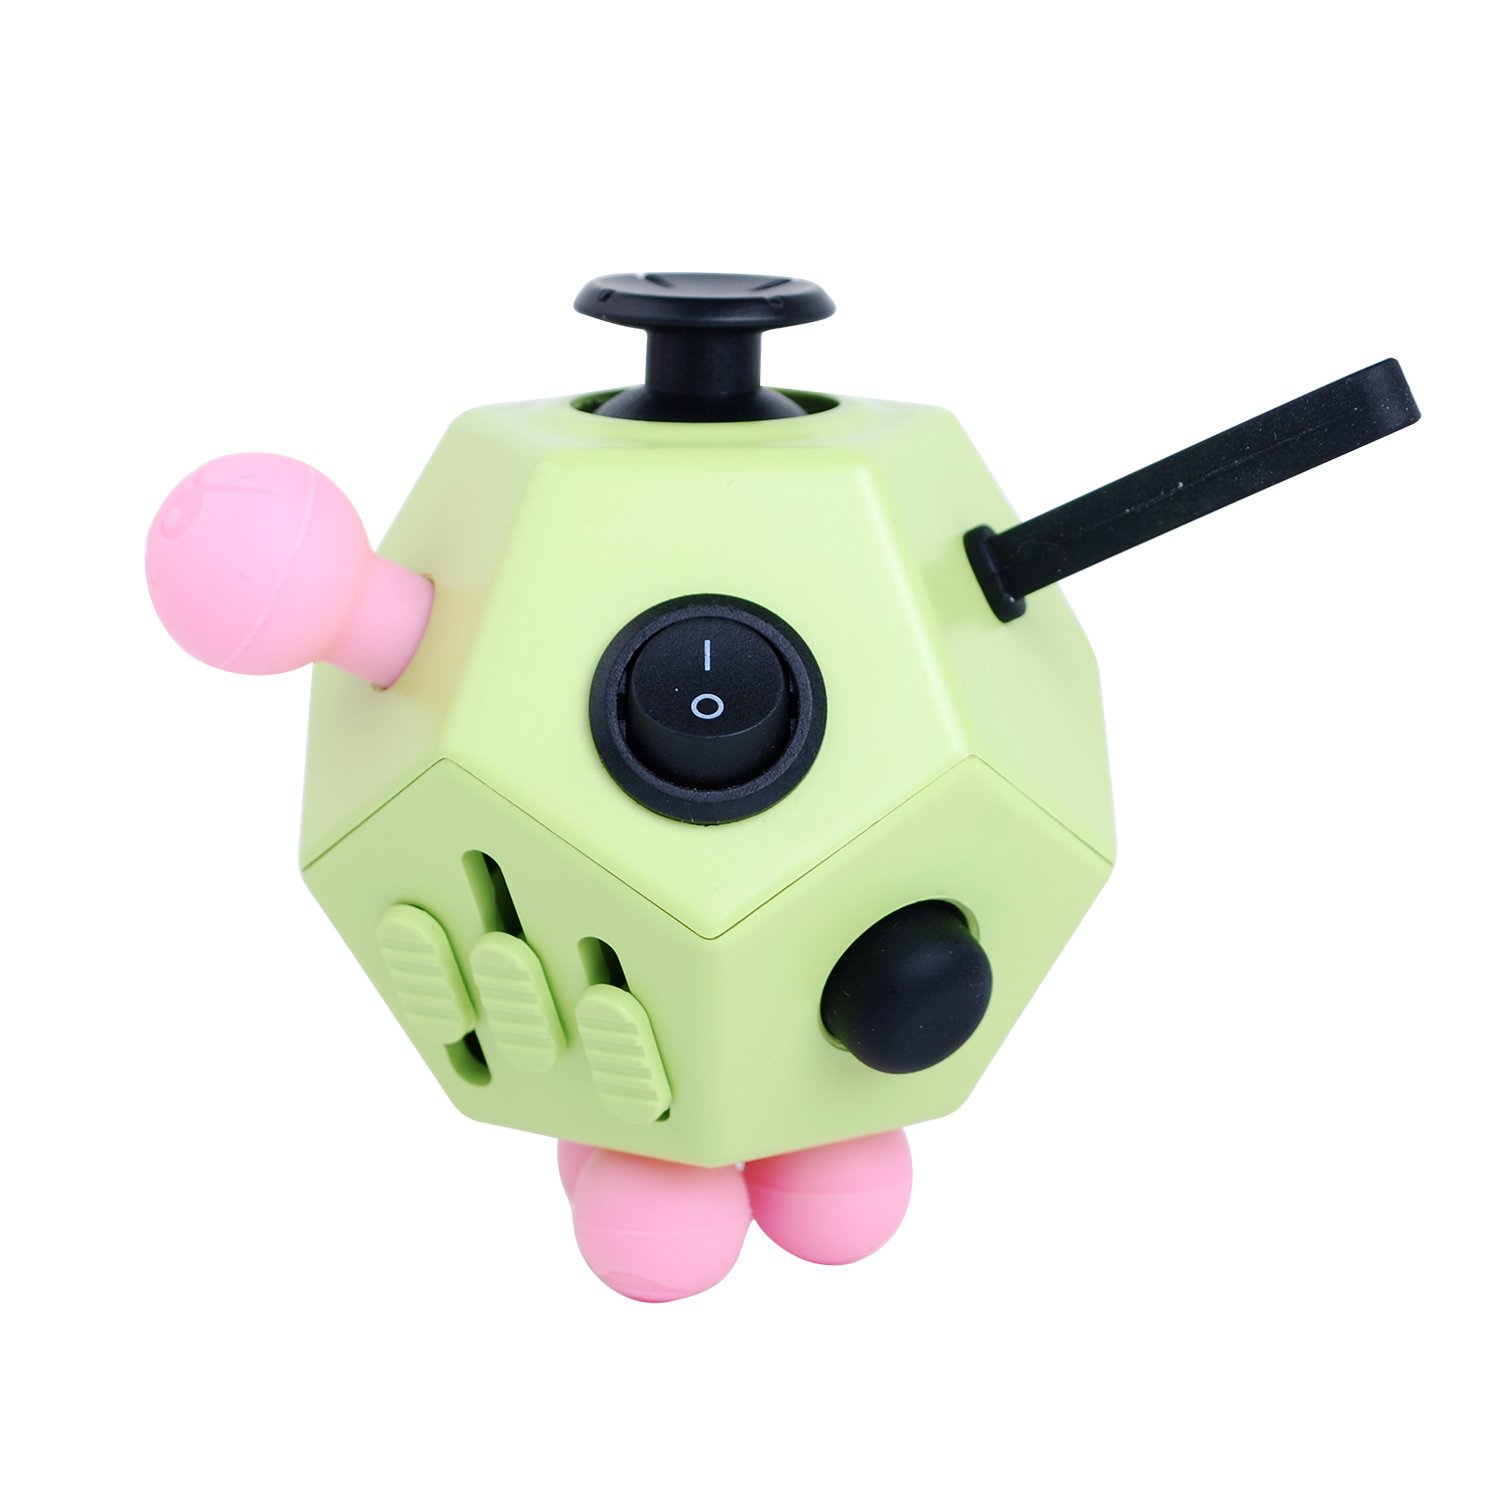 Fidget Cube Toys, Relieves Stress and Increases Focus for Adults and Children with ADHD ADD OCD Autism - 12 Sides Fidget Dice (Green)